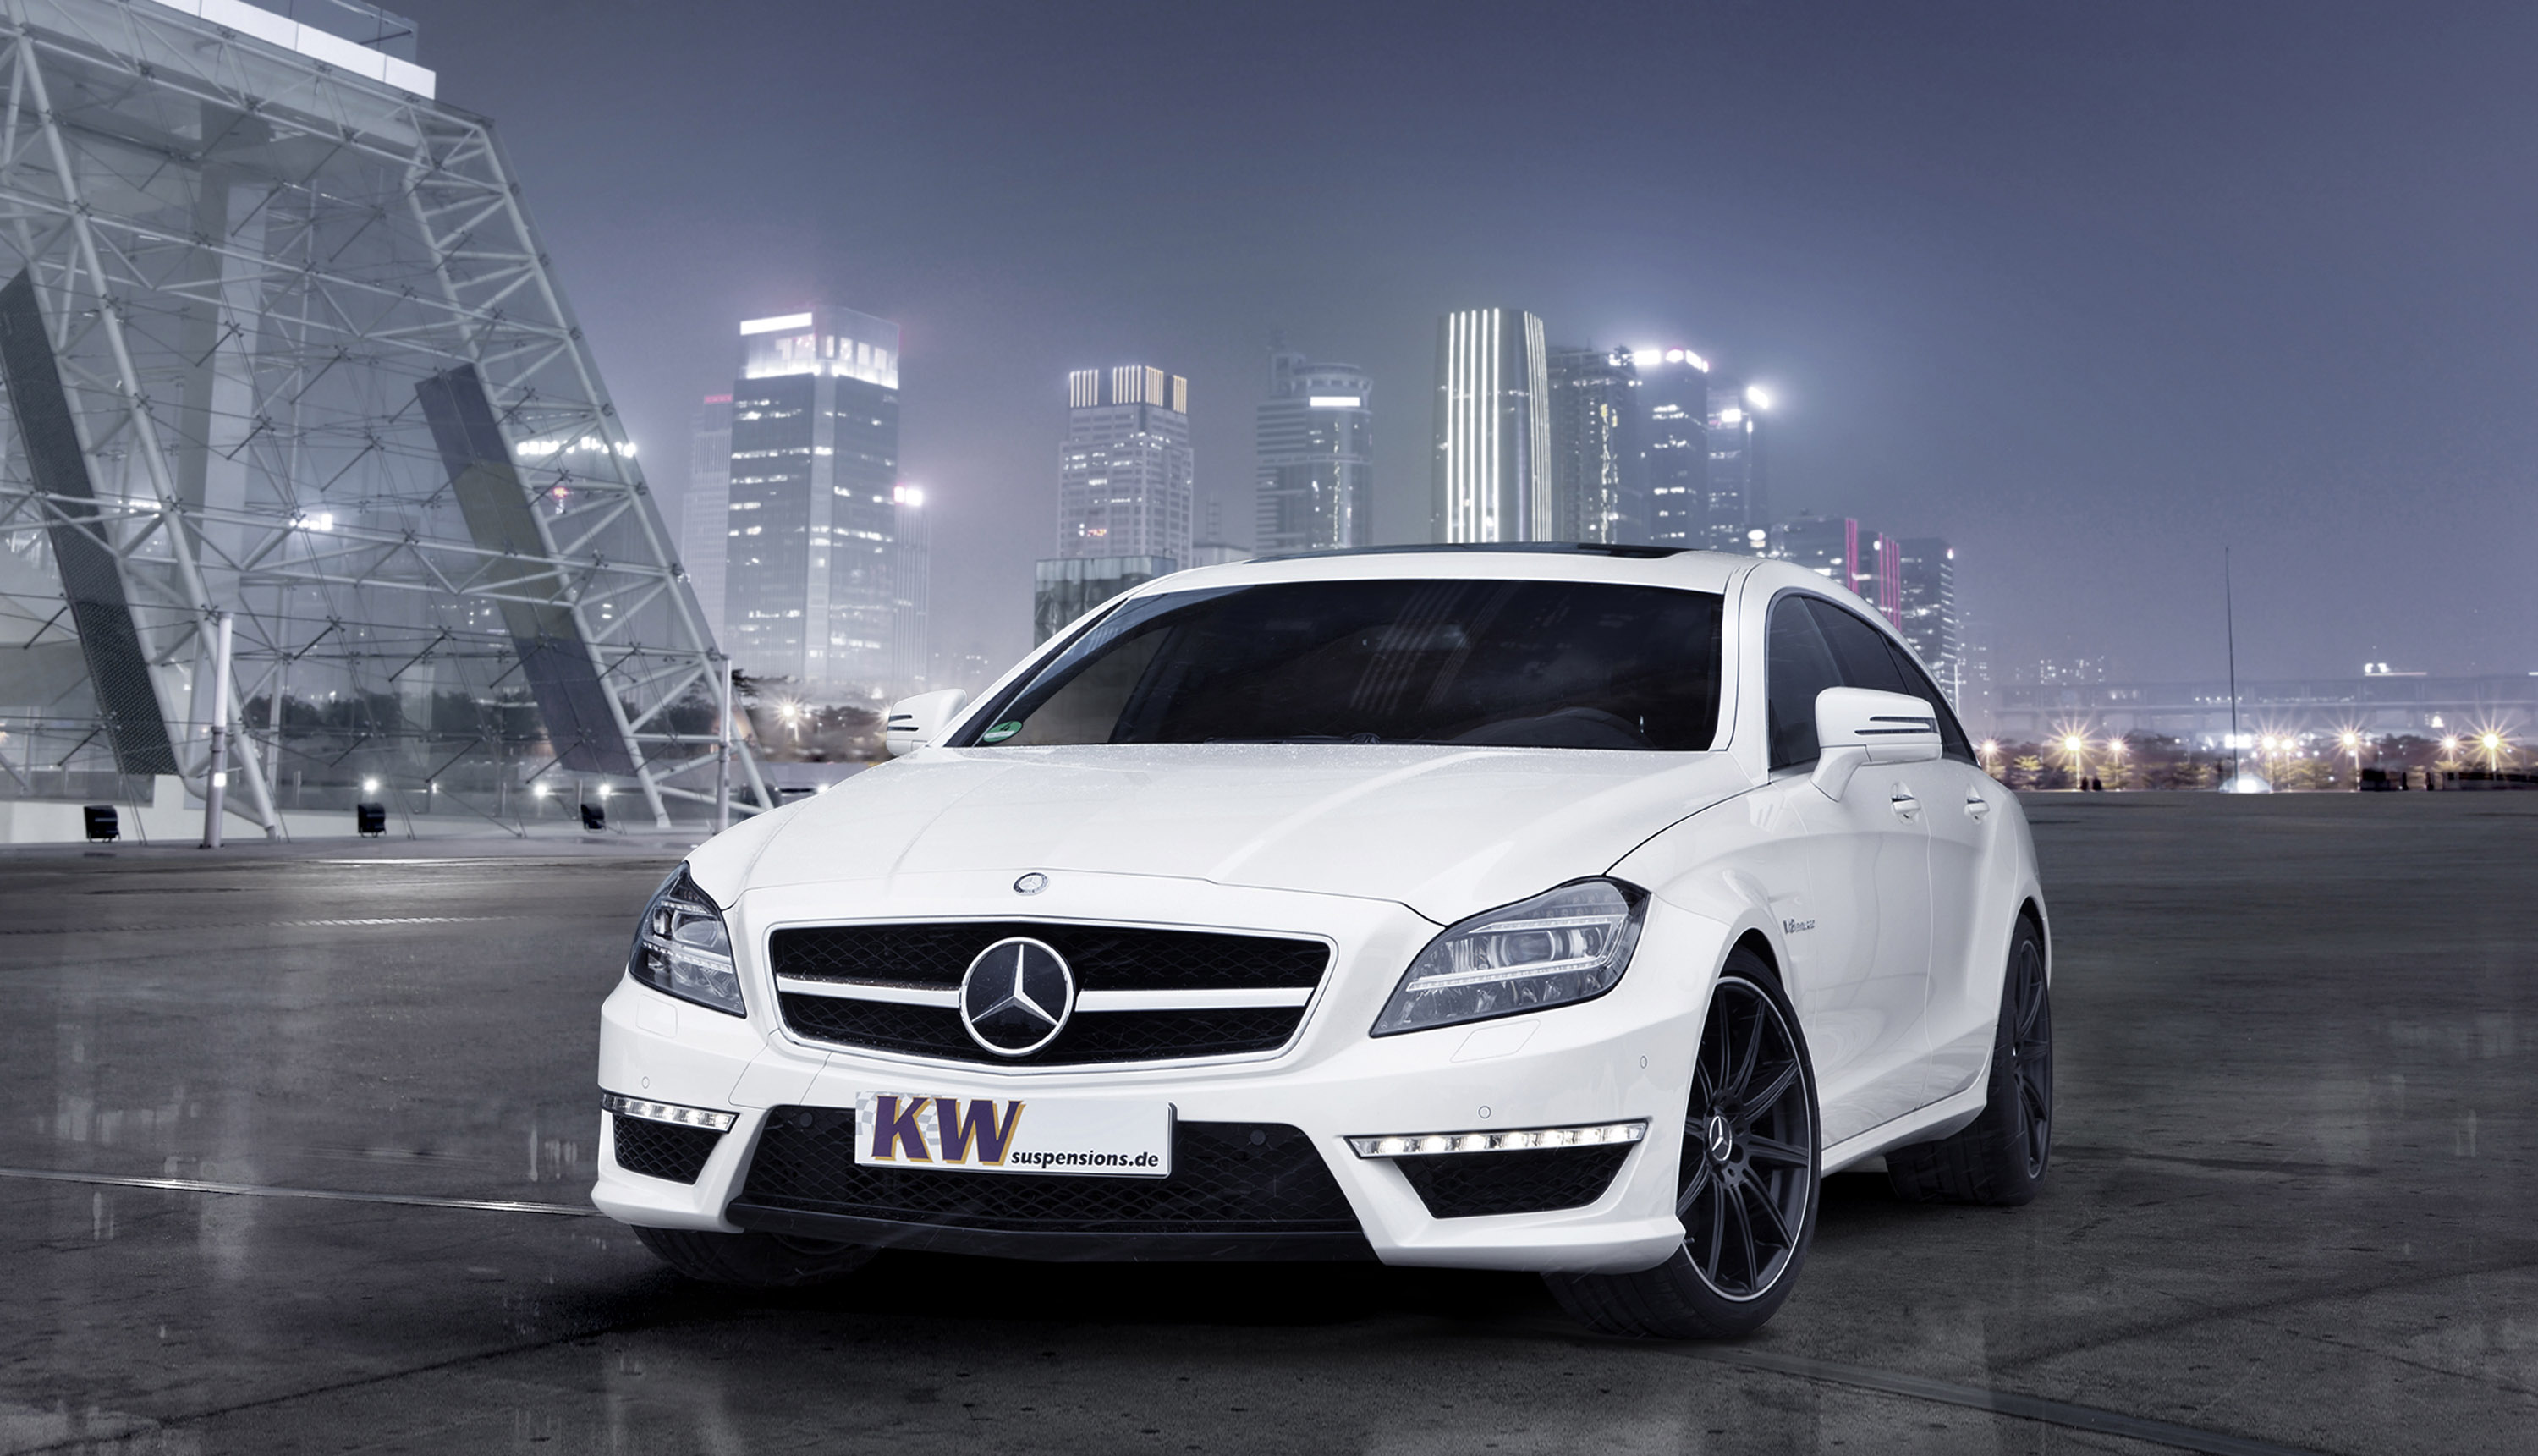 Kw Mercedes Benz Cls Amg Shooting Brake besides Maxresdefault together with Mercedes Amg C also Maxresdefault also Mercedes Mlc Amg. on mercedes amg v8 biturbo coupe